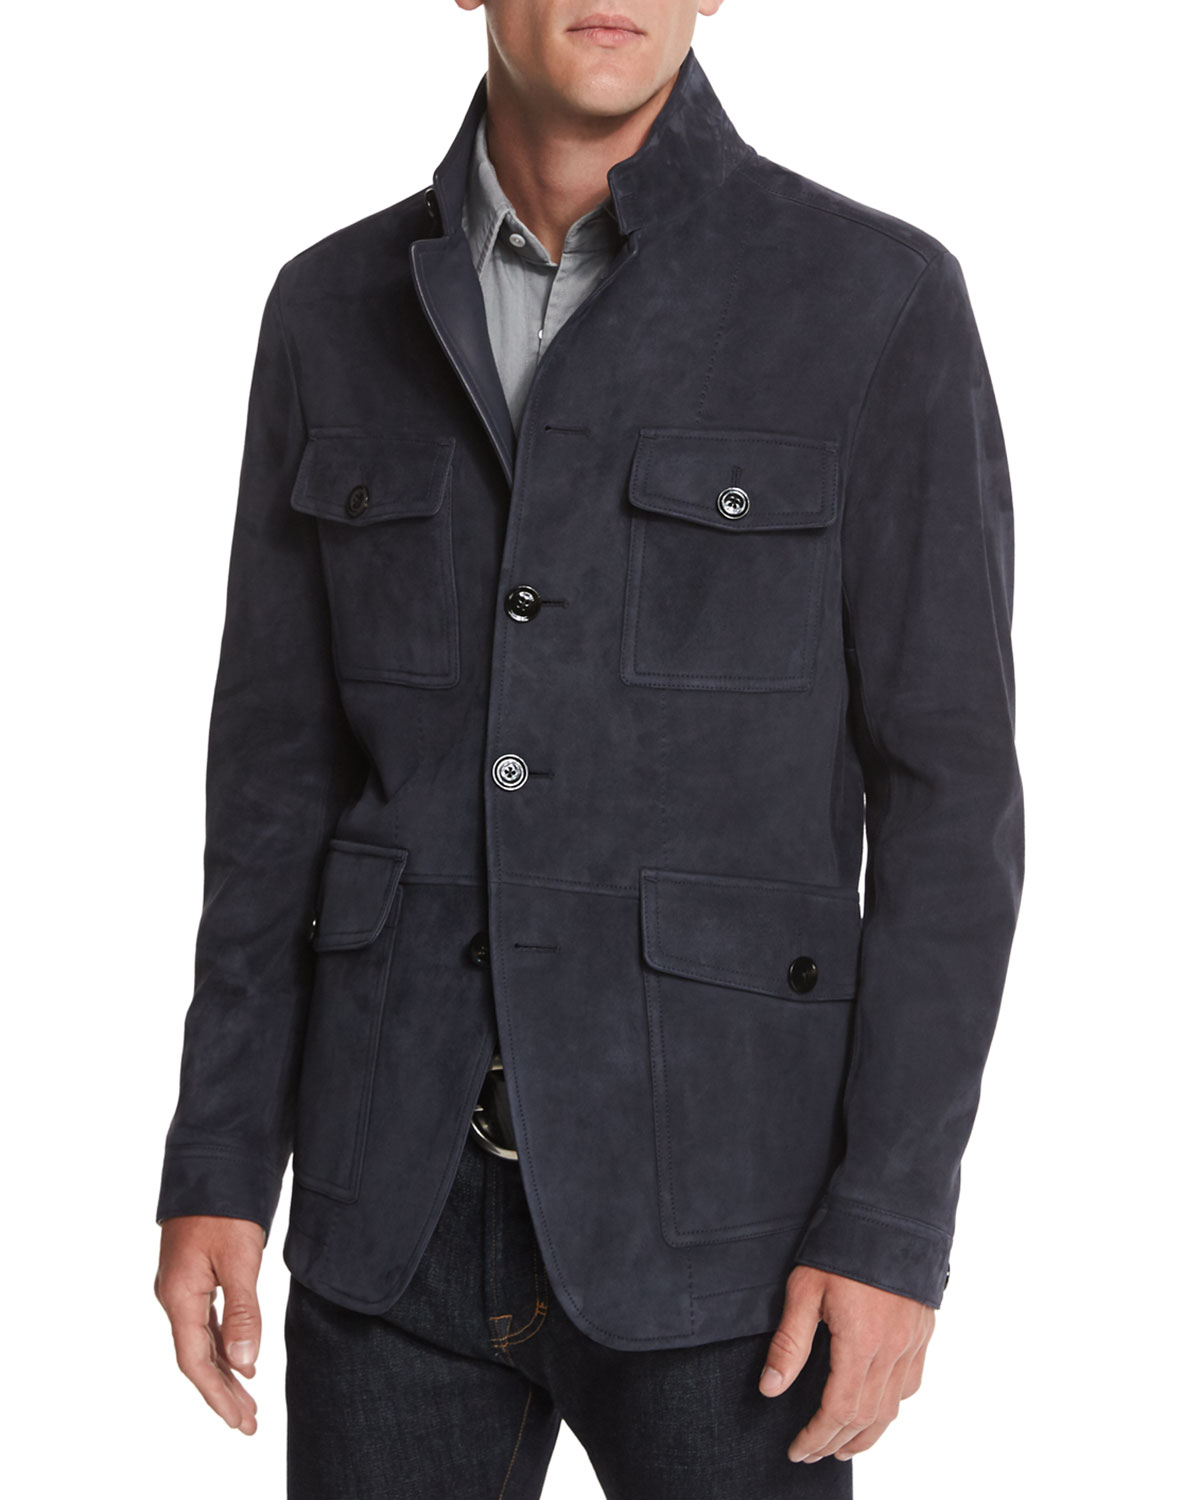 Suede Four Pocket Military Jacket Navy